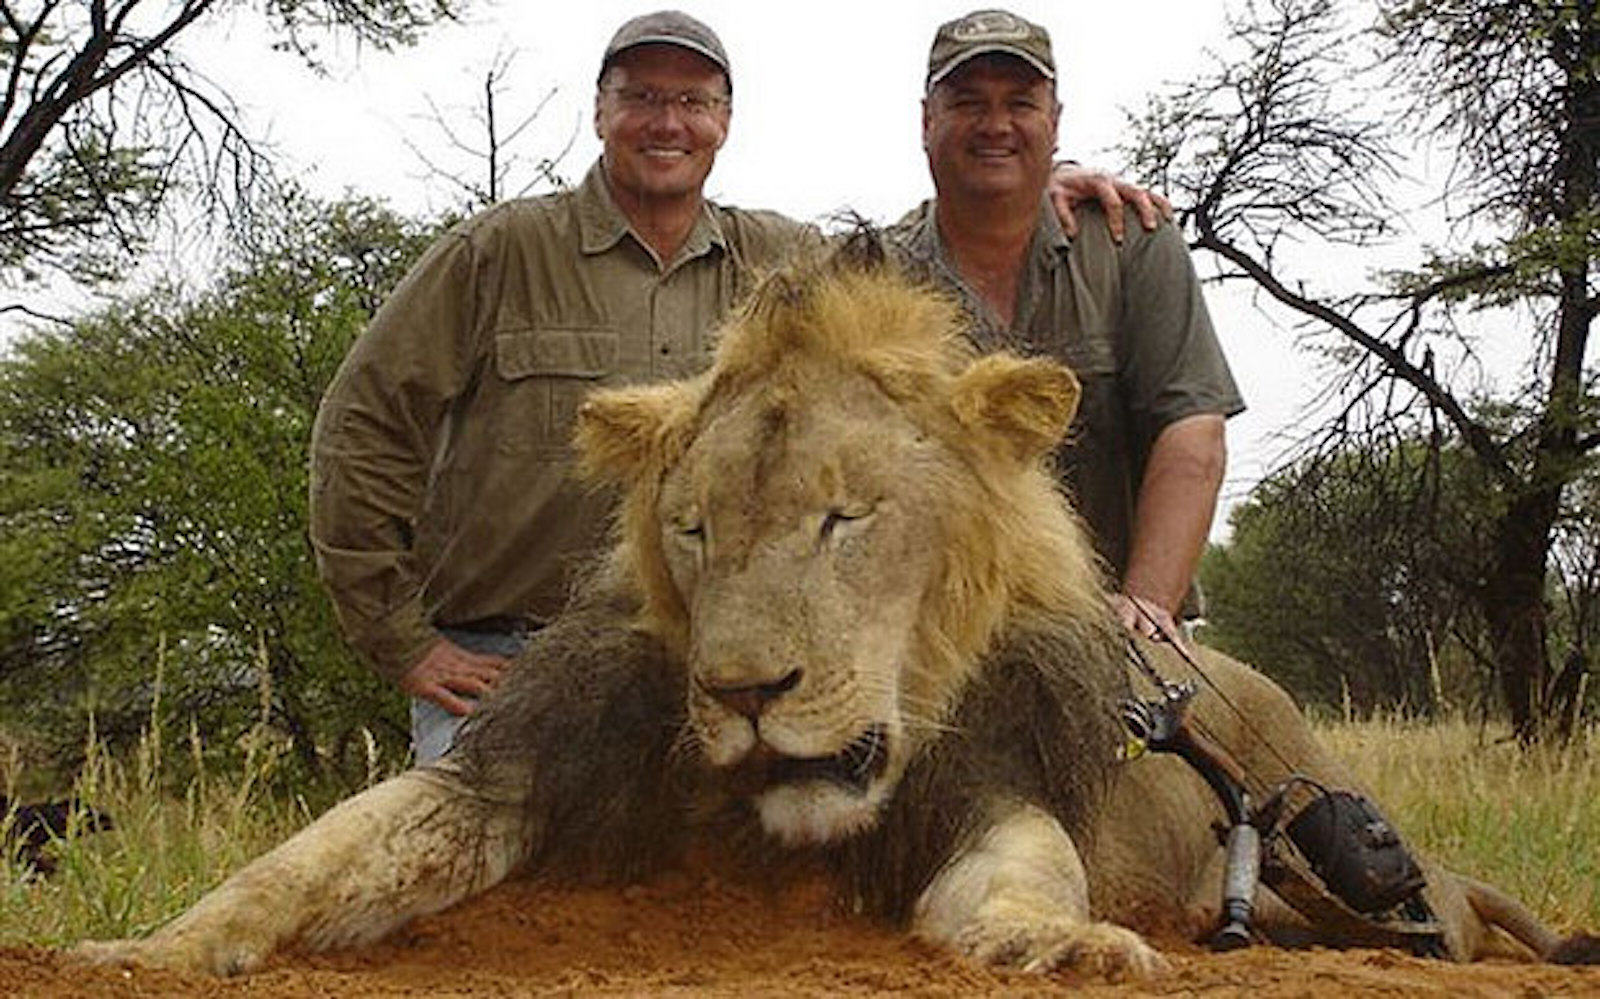 Cecil The Lion Killer Walter Palmer Has Finally Spoken Out UNILAD 5obw6pvl4juvybcaliapox0nze6ljazbanba9drrcqlwcjoxqcltyyisy9yybyv27